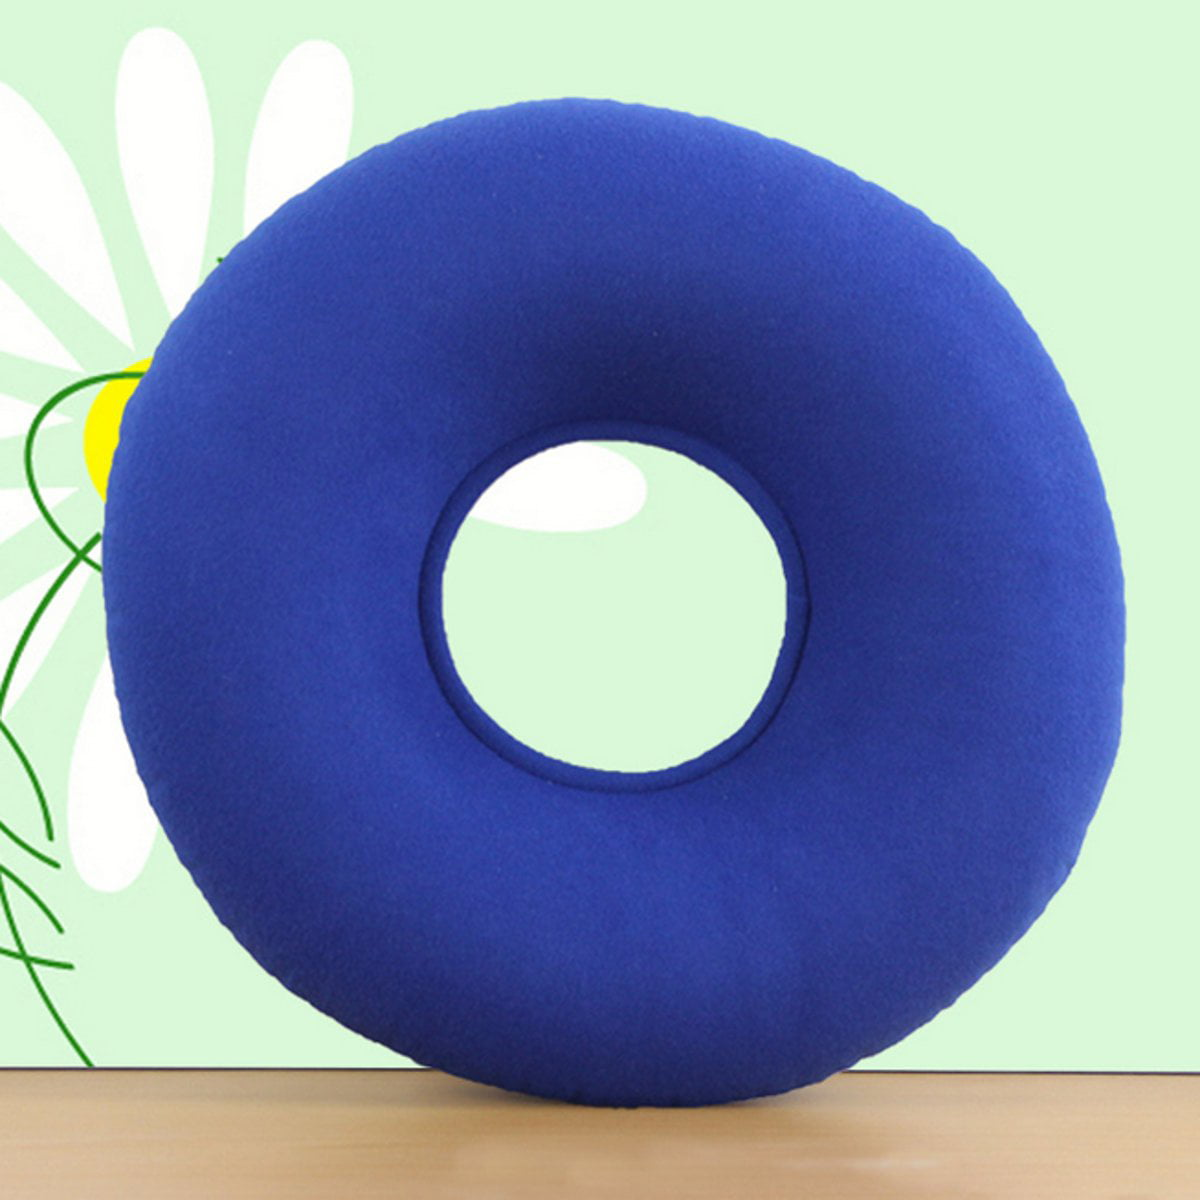 14 Quot Original Donut Cushion Inflatable Donut Pillow For